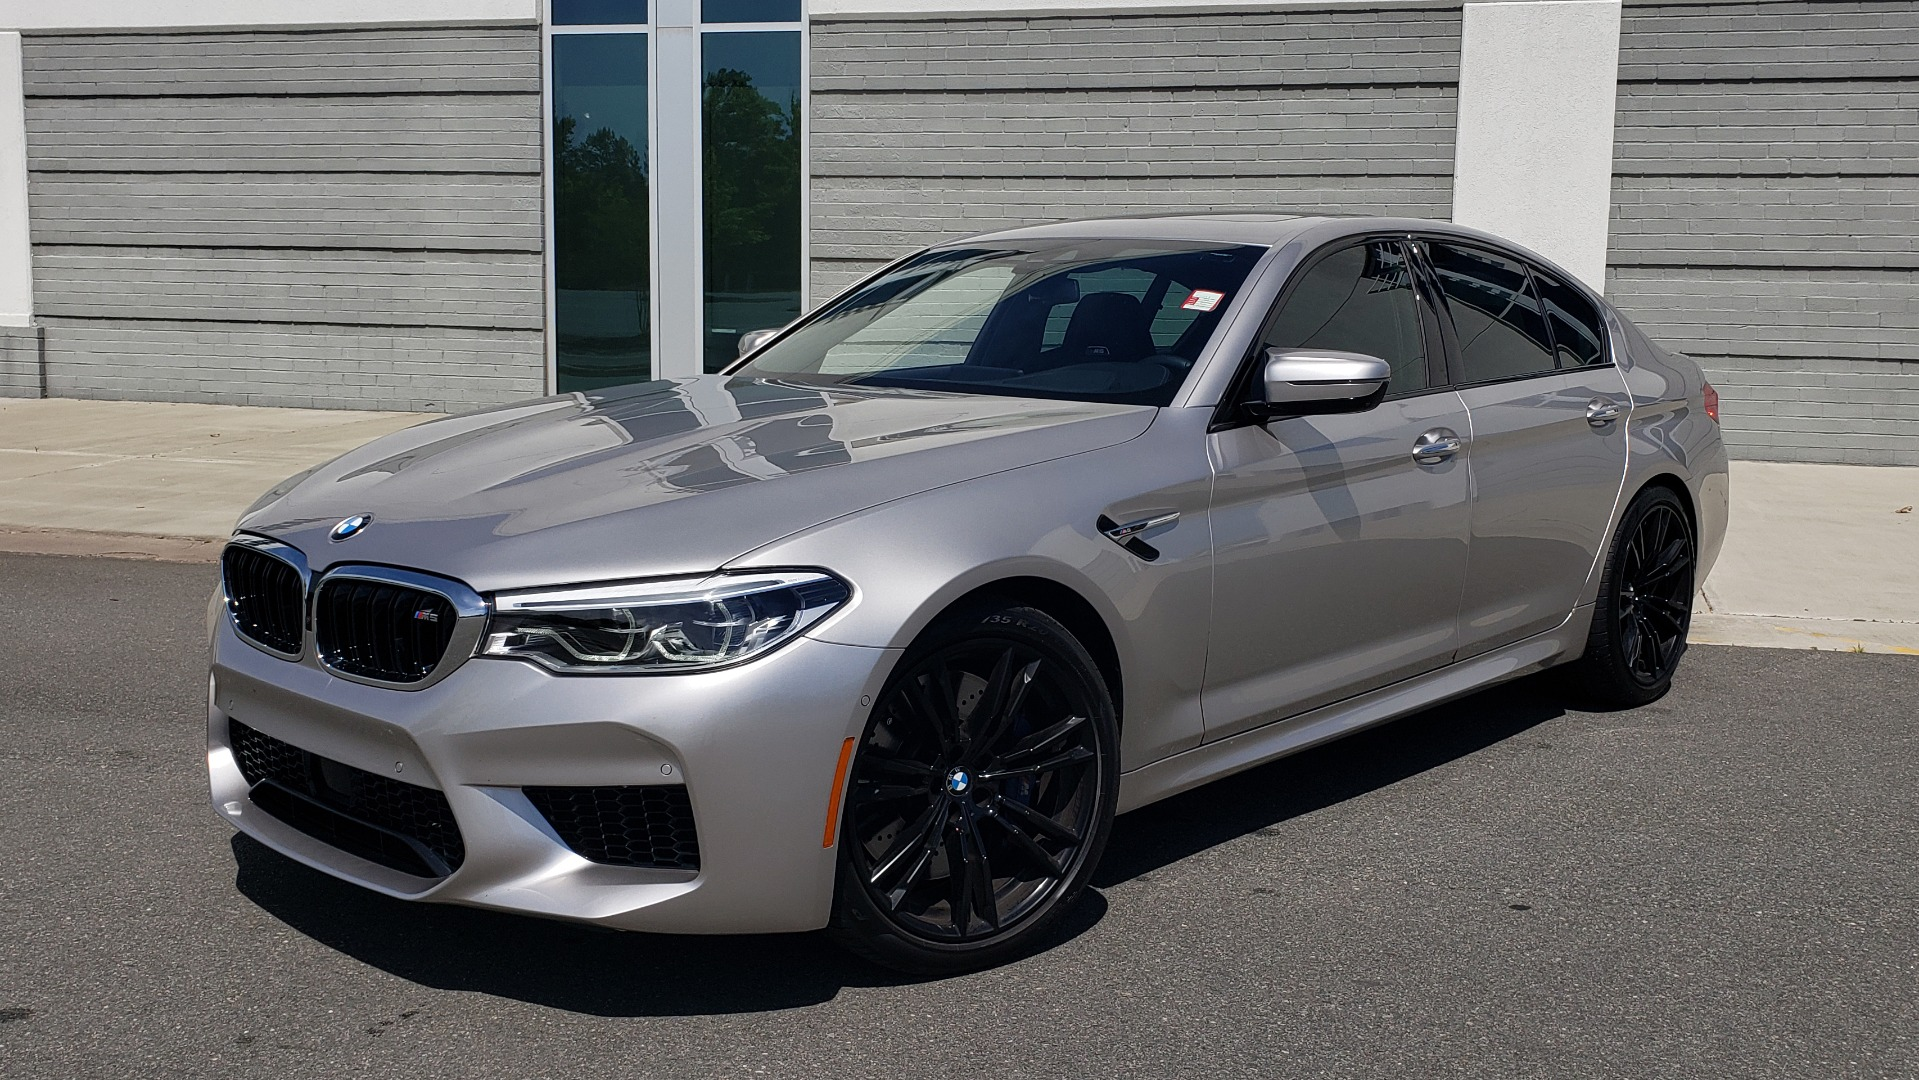 Used 2018 BMW M5 SEDAN / EXEC PKG / DRVR ASST PLUS / MOONROOF / B&W SND for sale $81,495 at Formula Imports in Charlotte NC 28227 1